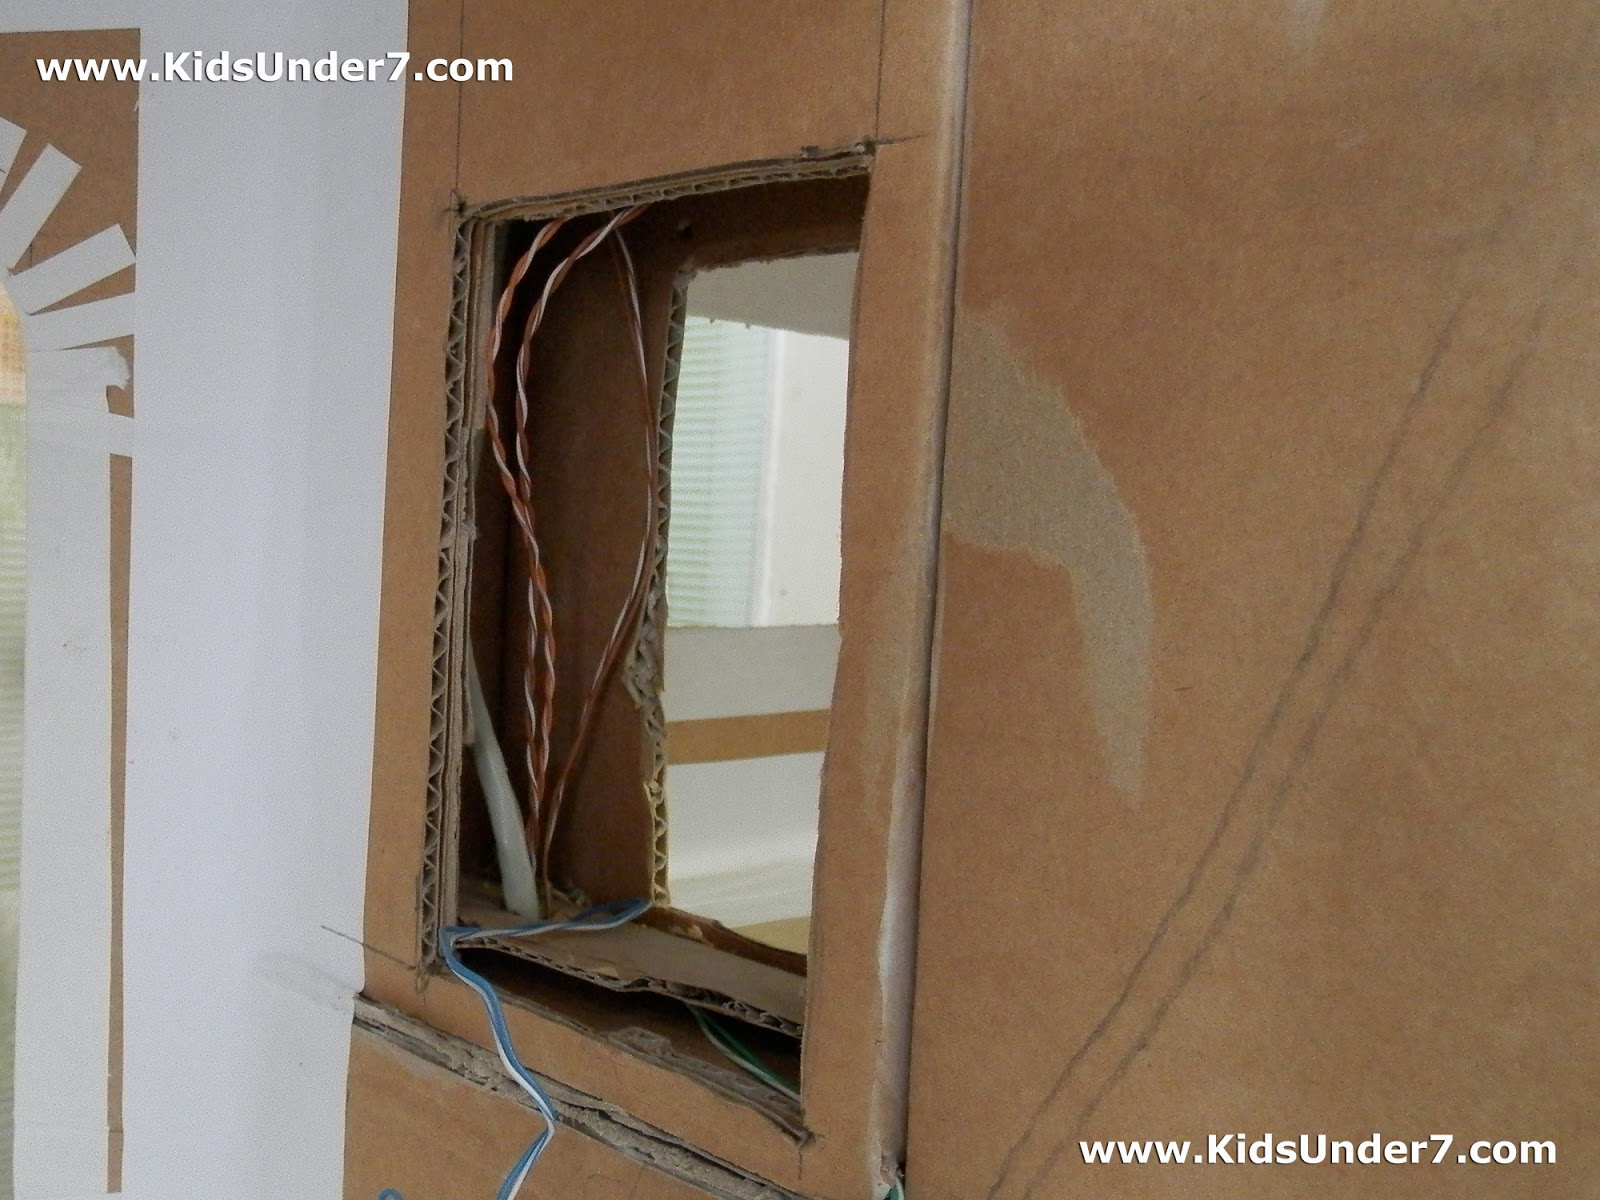 Kids Under 7 How To Make A Dollhouse Part 1 Doll House Wiring In The Future We Will Hide All Wires